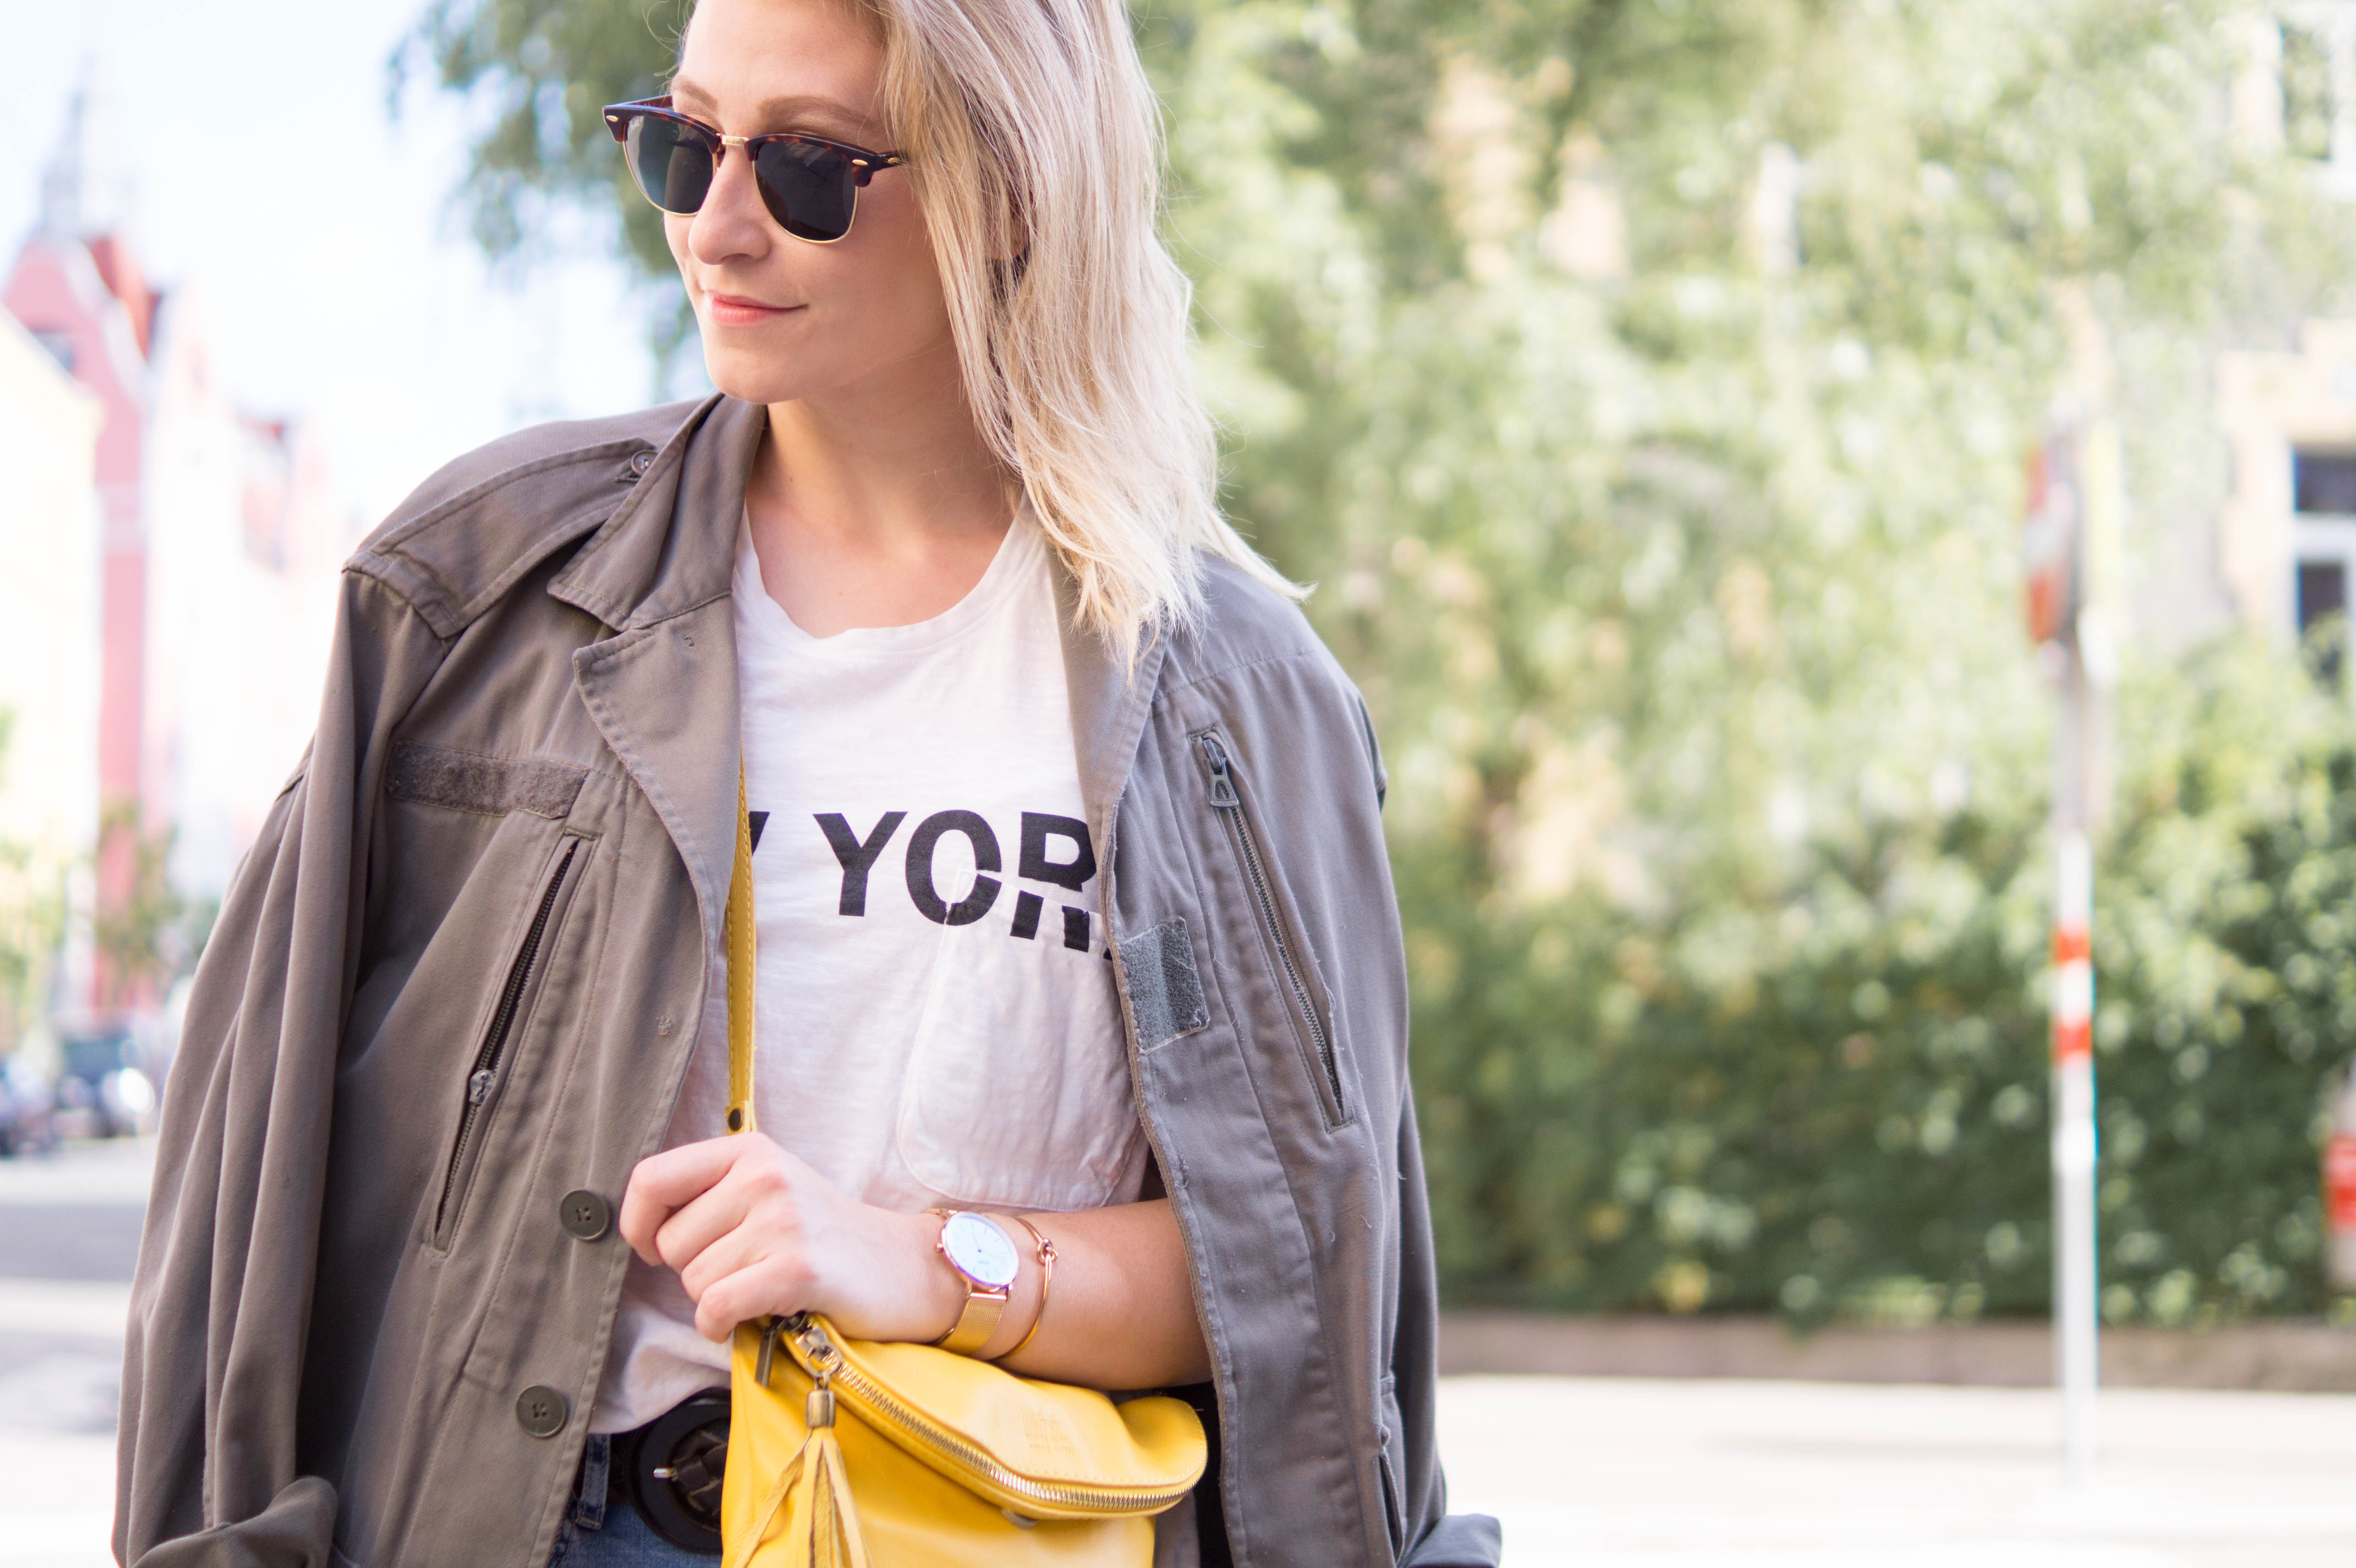 summer outfit espadrilles army jacket yellow bag fashion